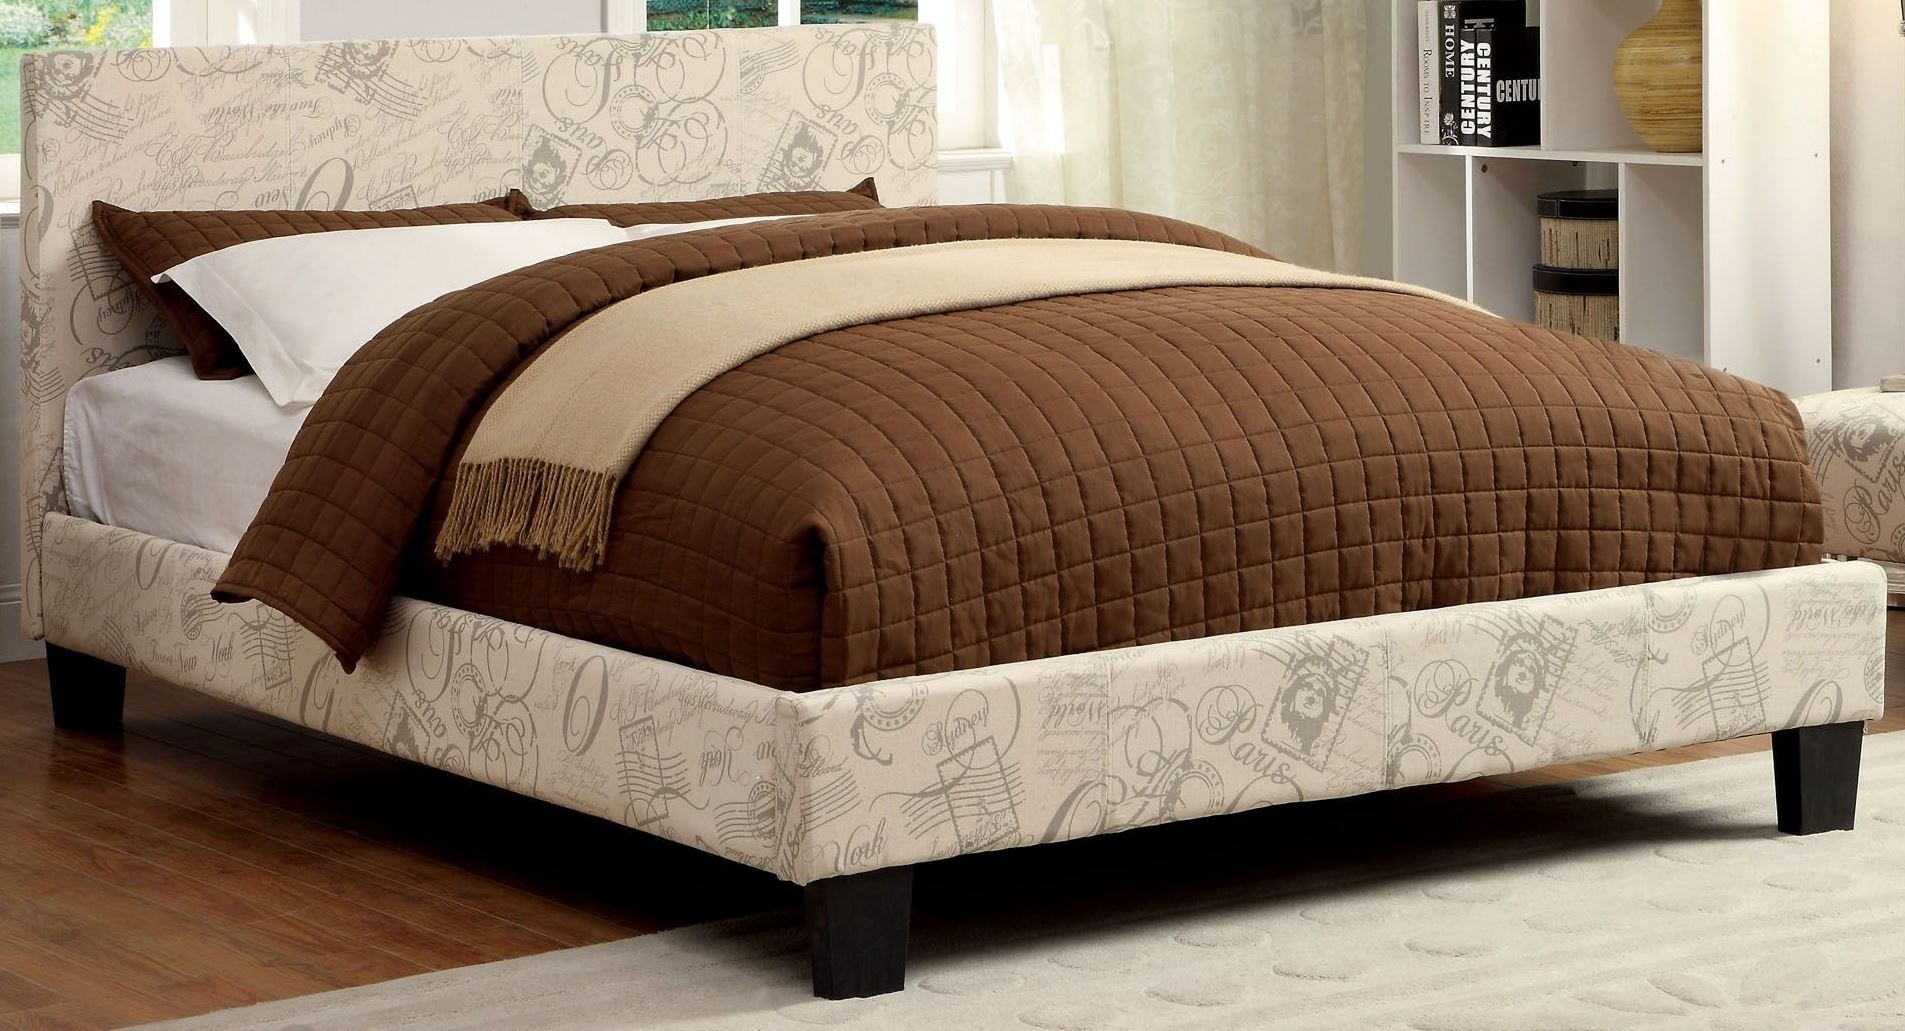 Winn park world traveler fabric queen platform bed from for K furniture fabric world